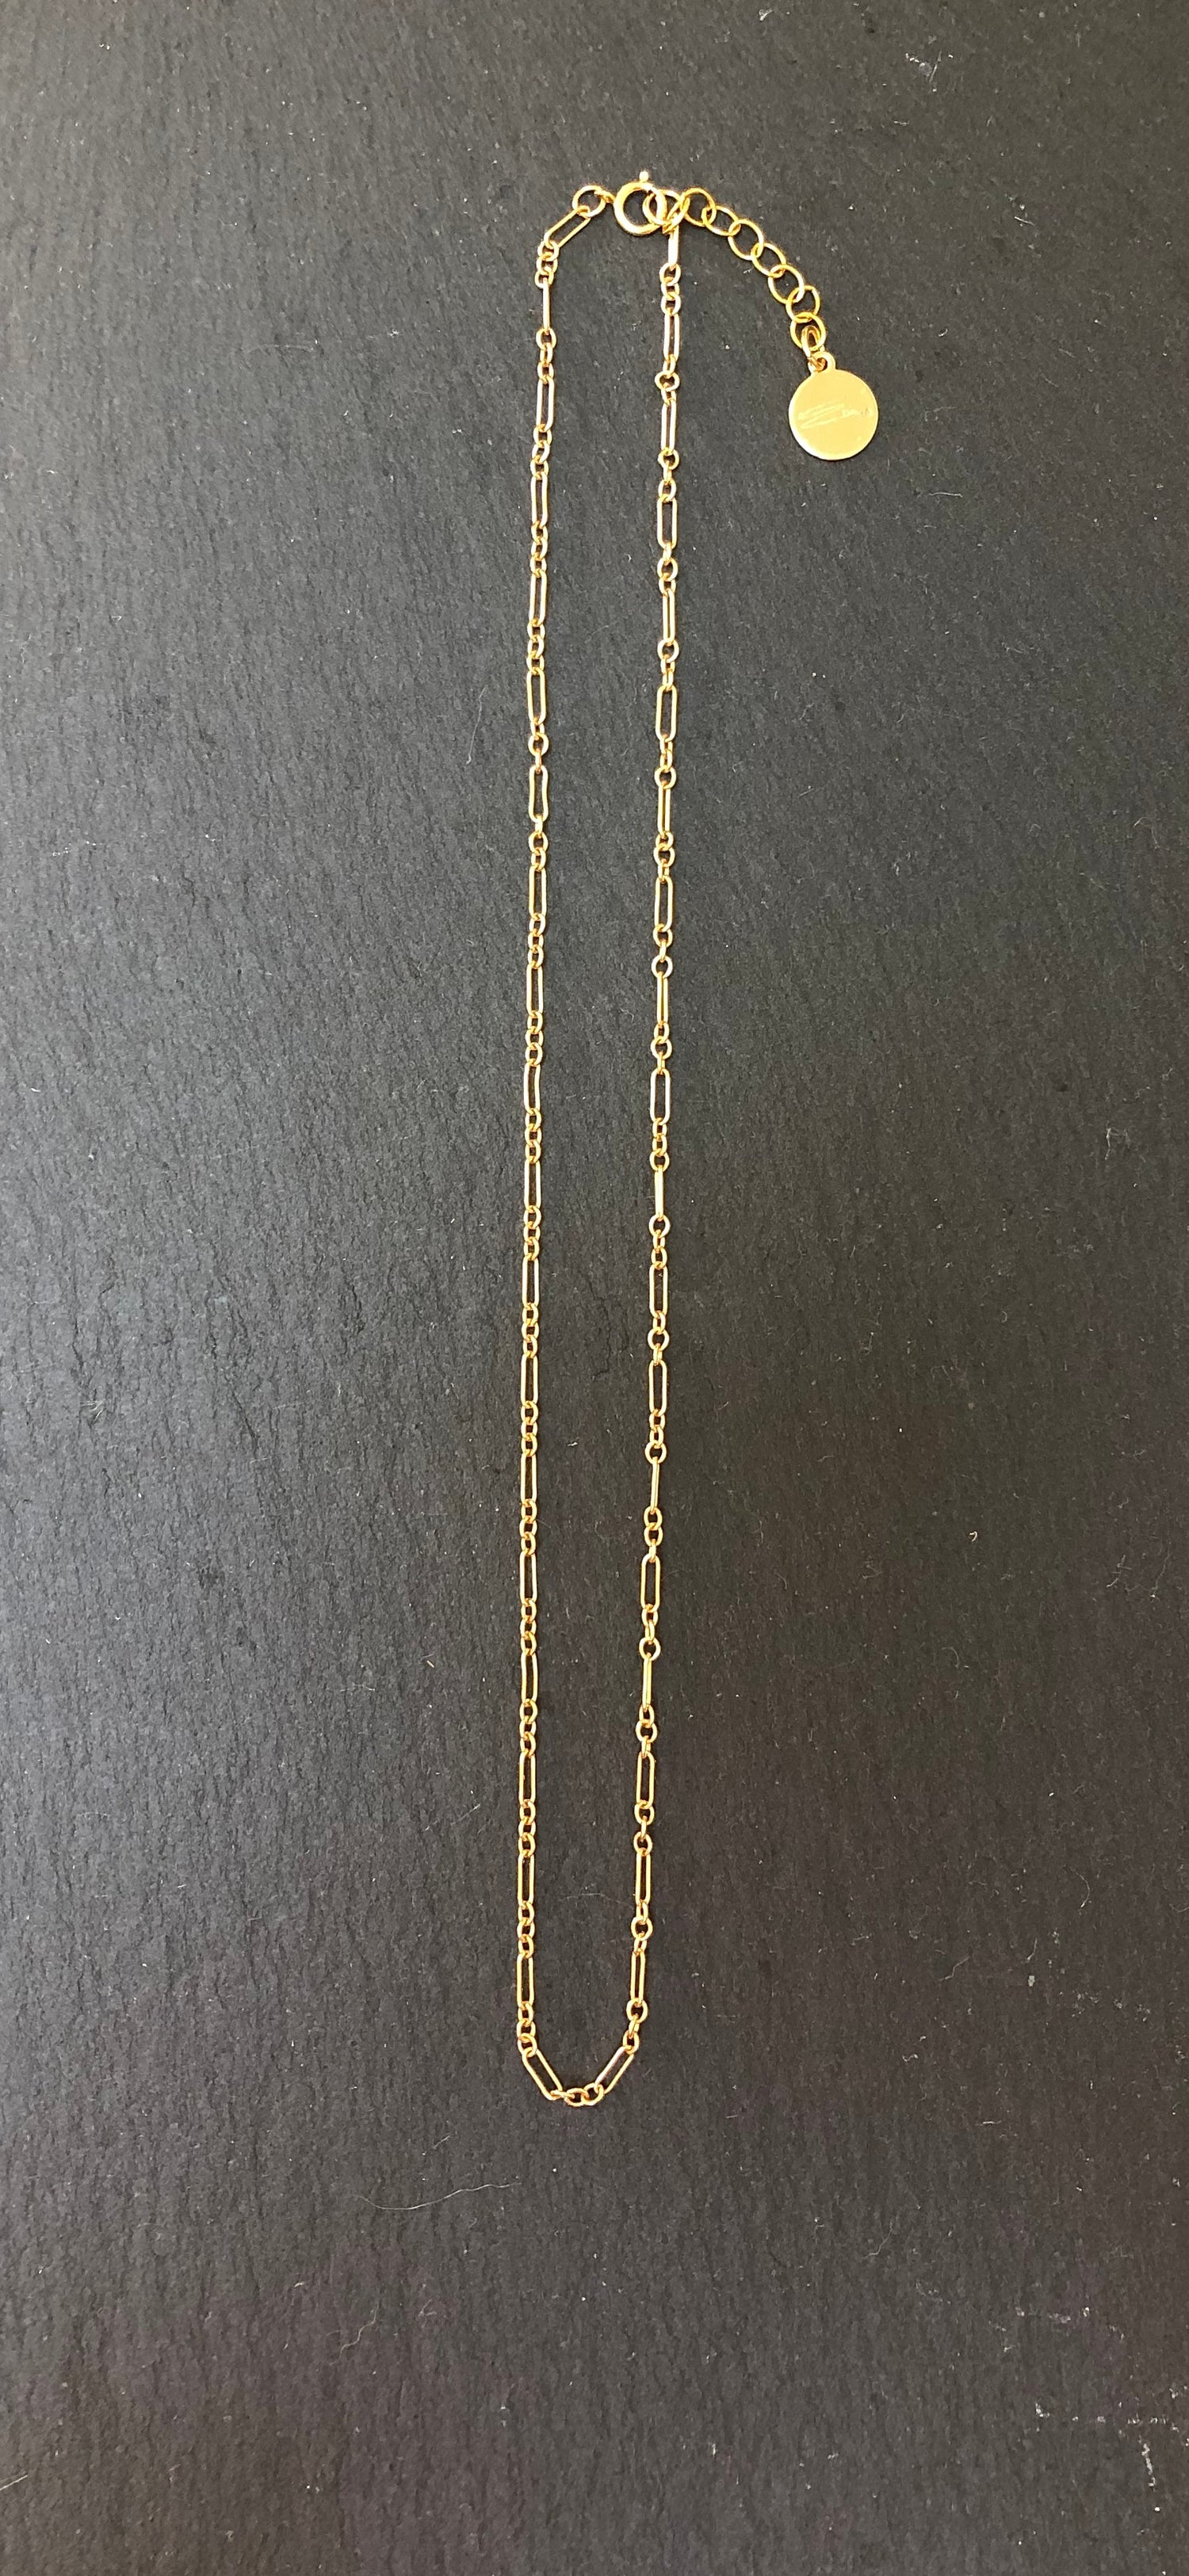 Image of Feminin Chain Gold Fill & Sterling Silver